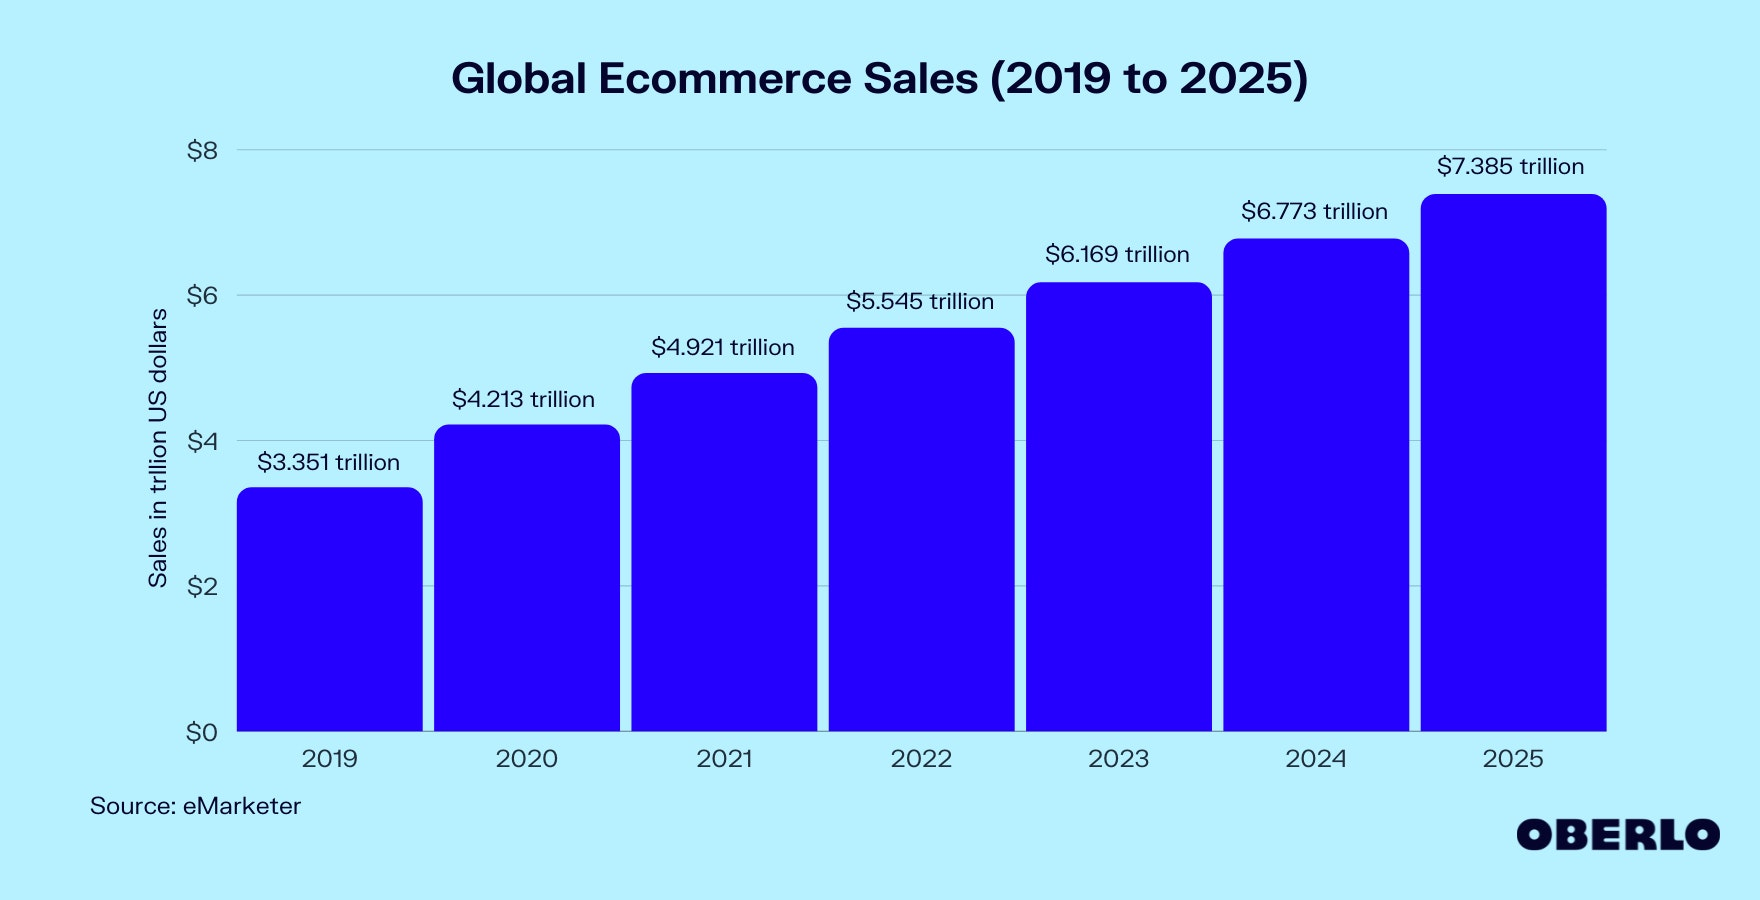 Chart of Global Ecommerce Sales (2019 to 2025)